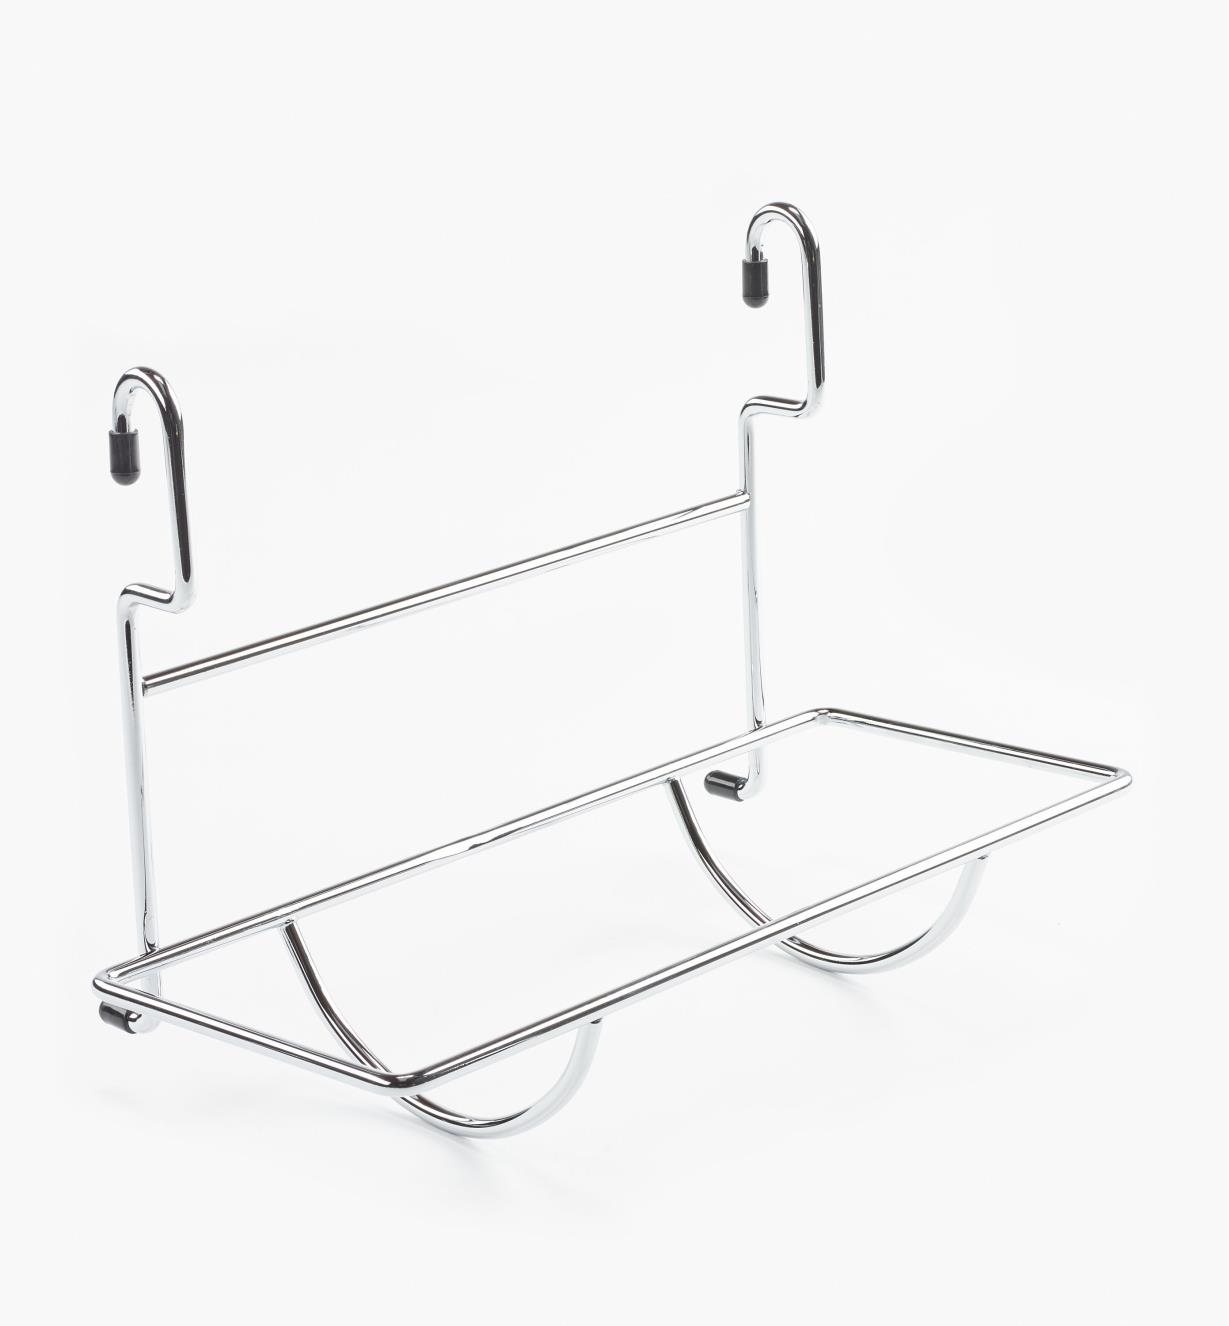 12K3433 - Paper Towel Holder